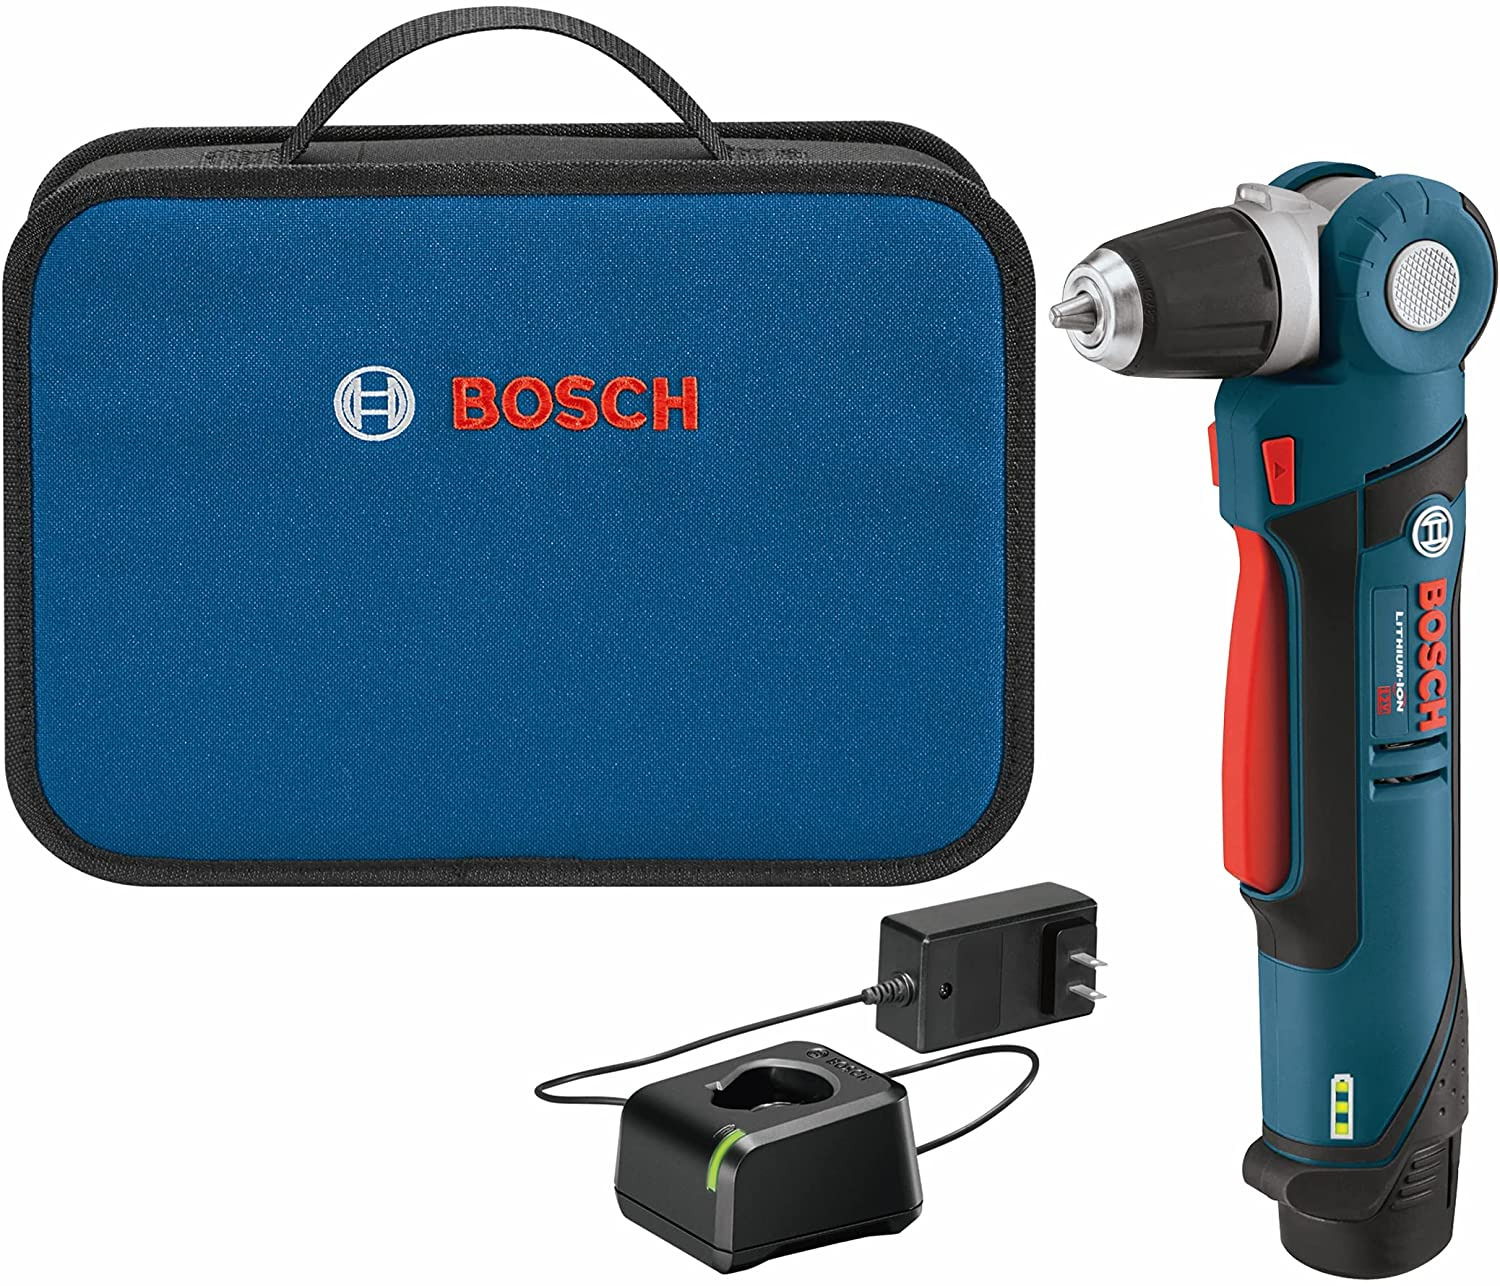 BOSCH PS11-102 Drill (Right Angle with Driver Kit)